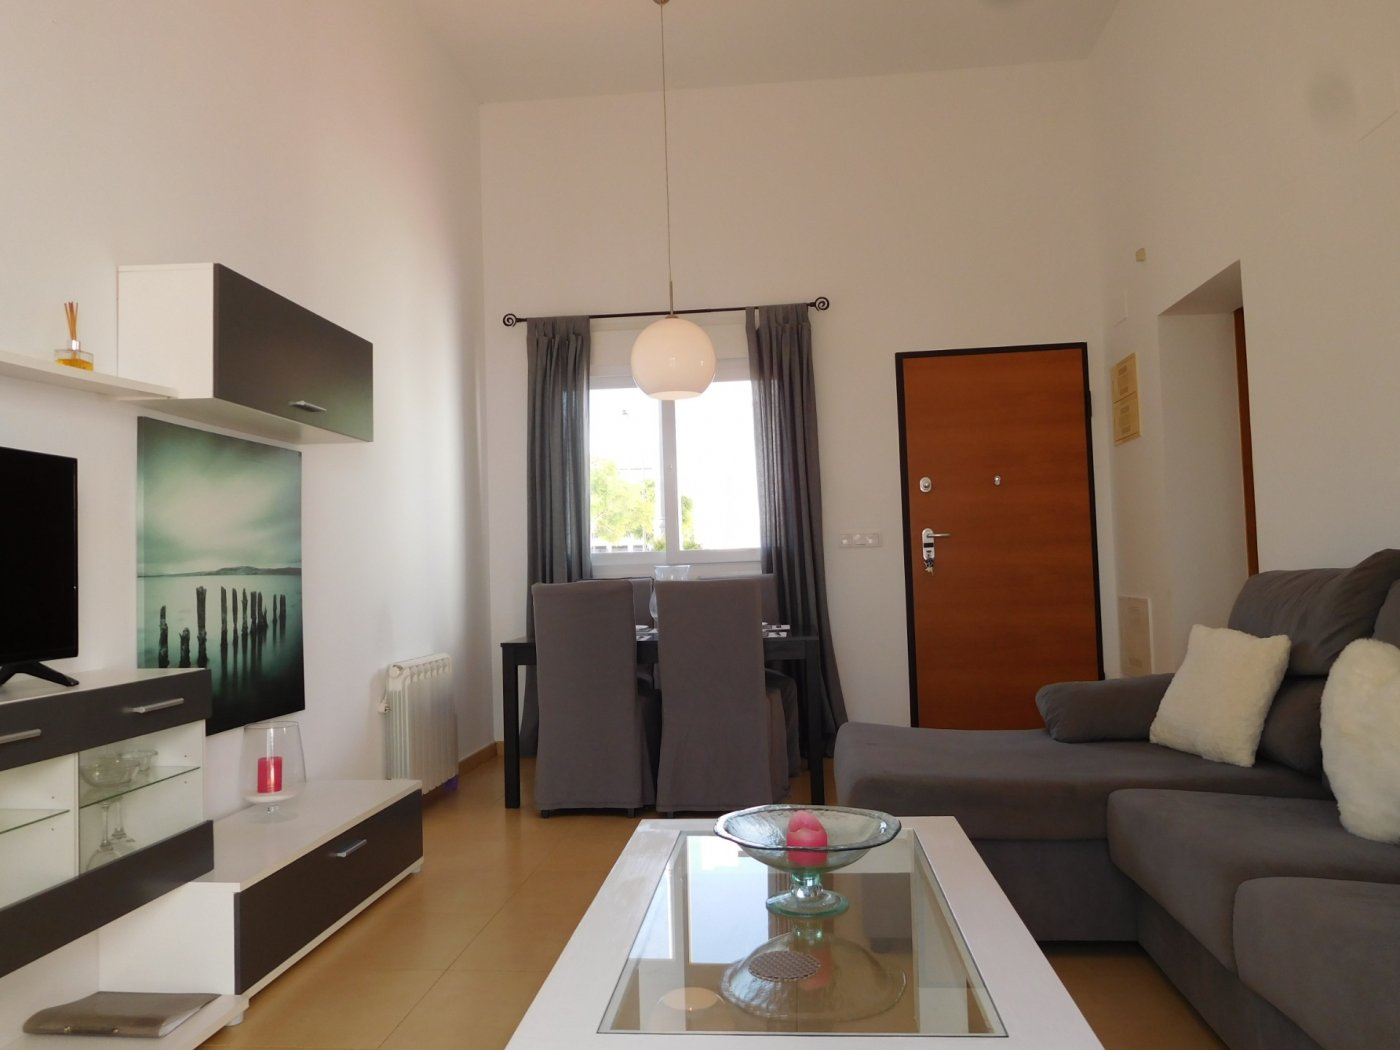 Gallery Image 6 of Casa For rent in Condado De Alhama, Alhama De Murcia With Pool